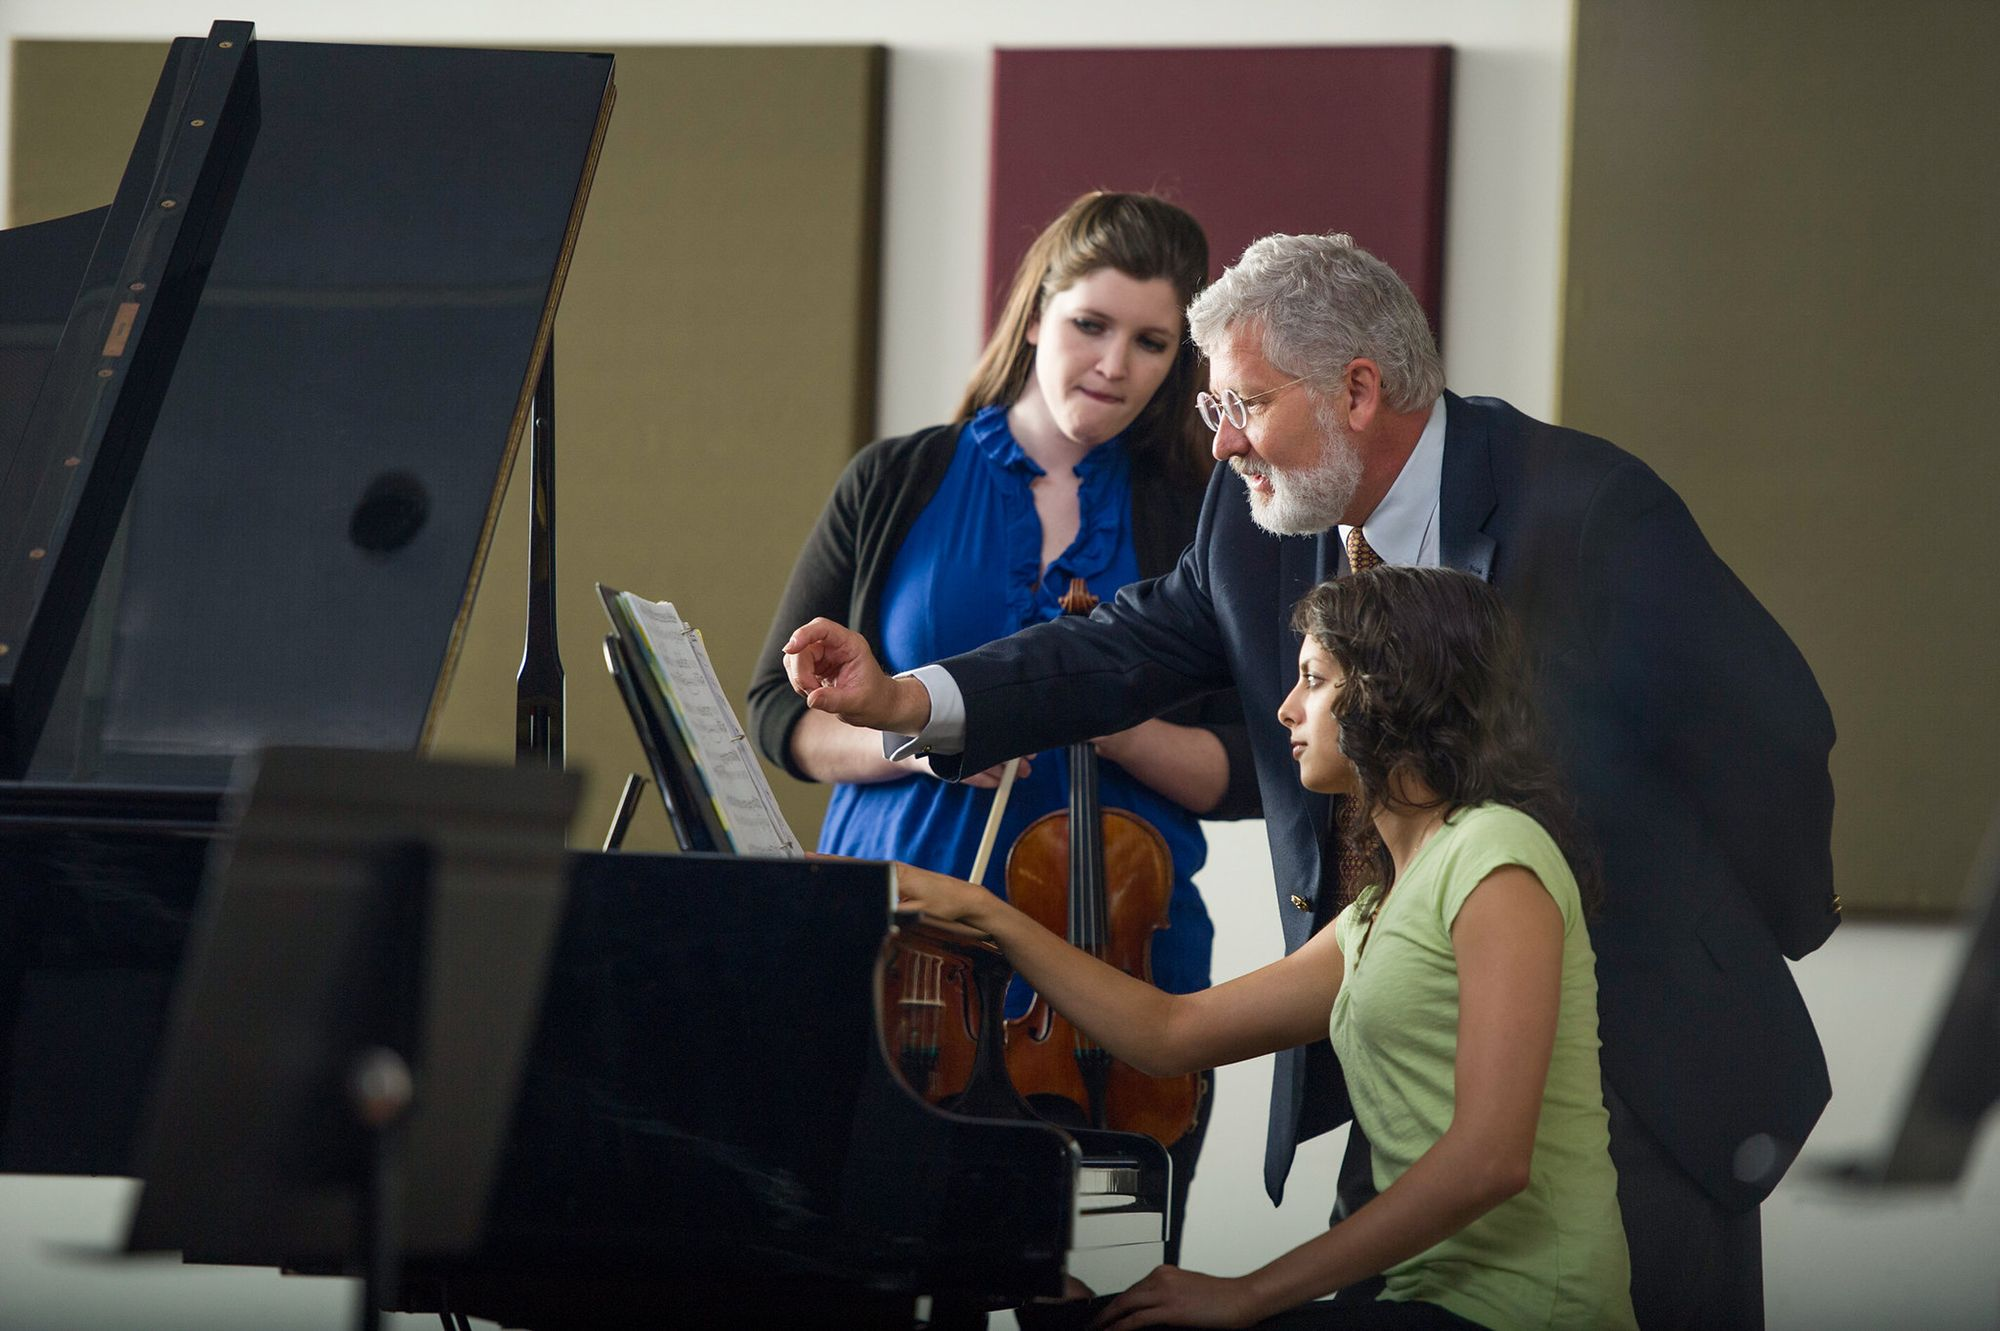 Music director and mentor, John Sinclair, reading sheet music at a piano with two college students.